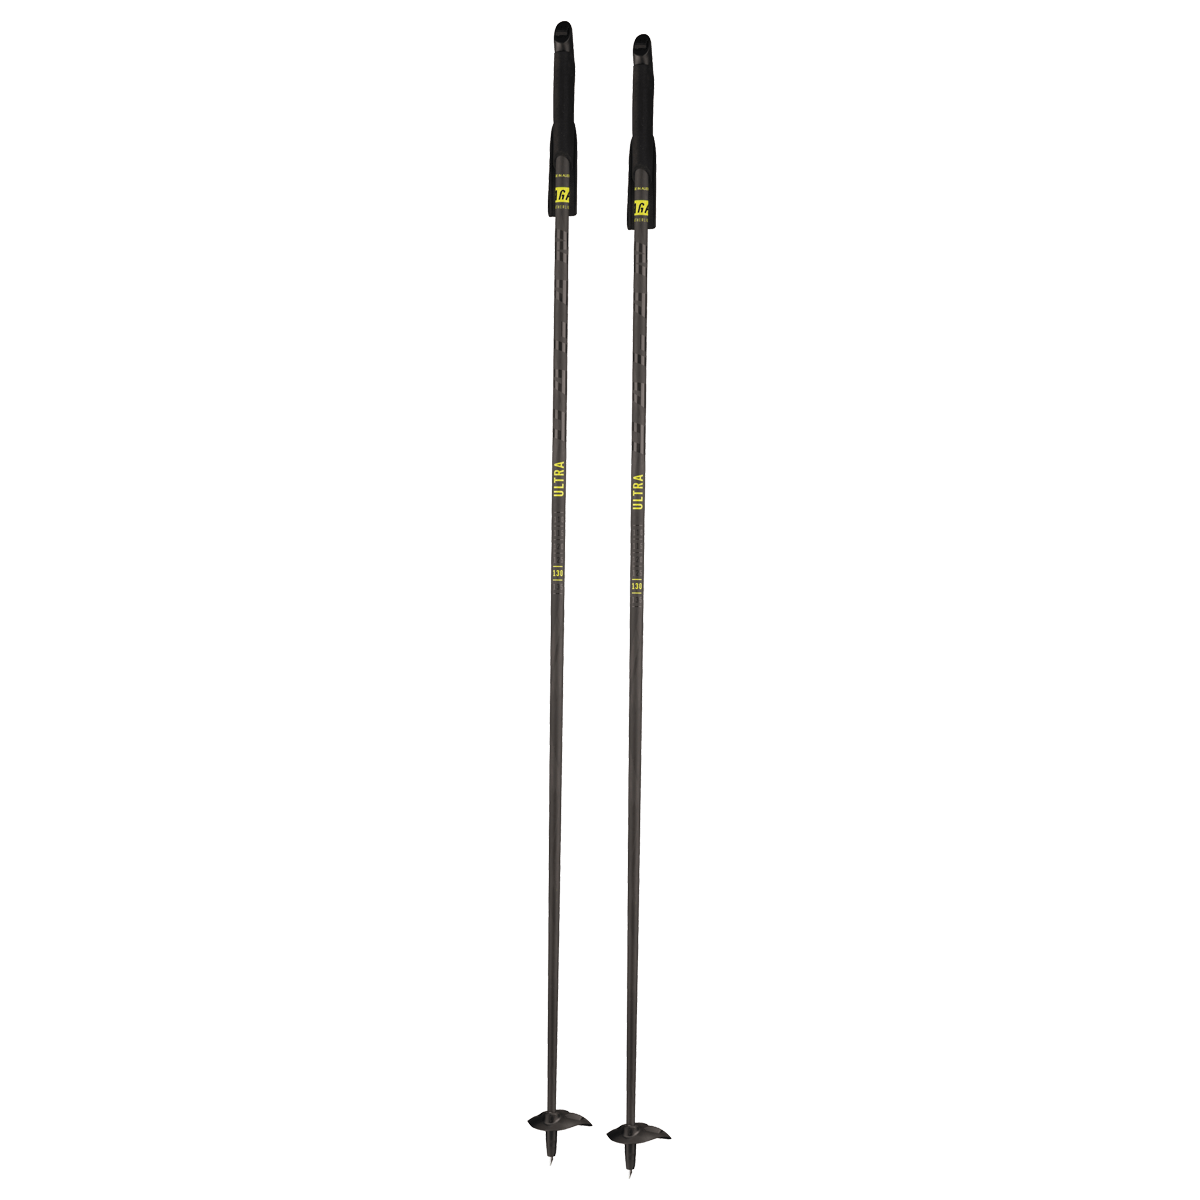 Ultra Carbon Pole, Poles - Hagan Ski Mountaineering Alpine Ski Touring Backcountry Gear